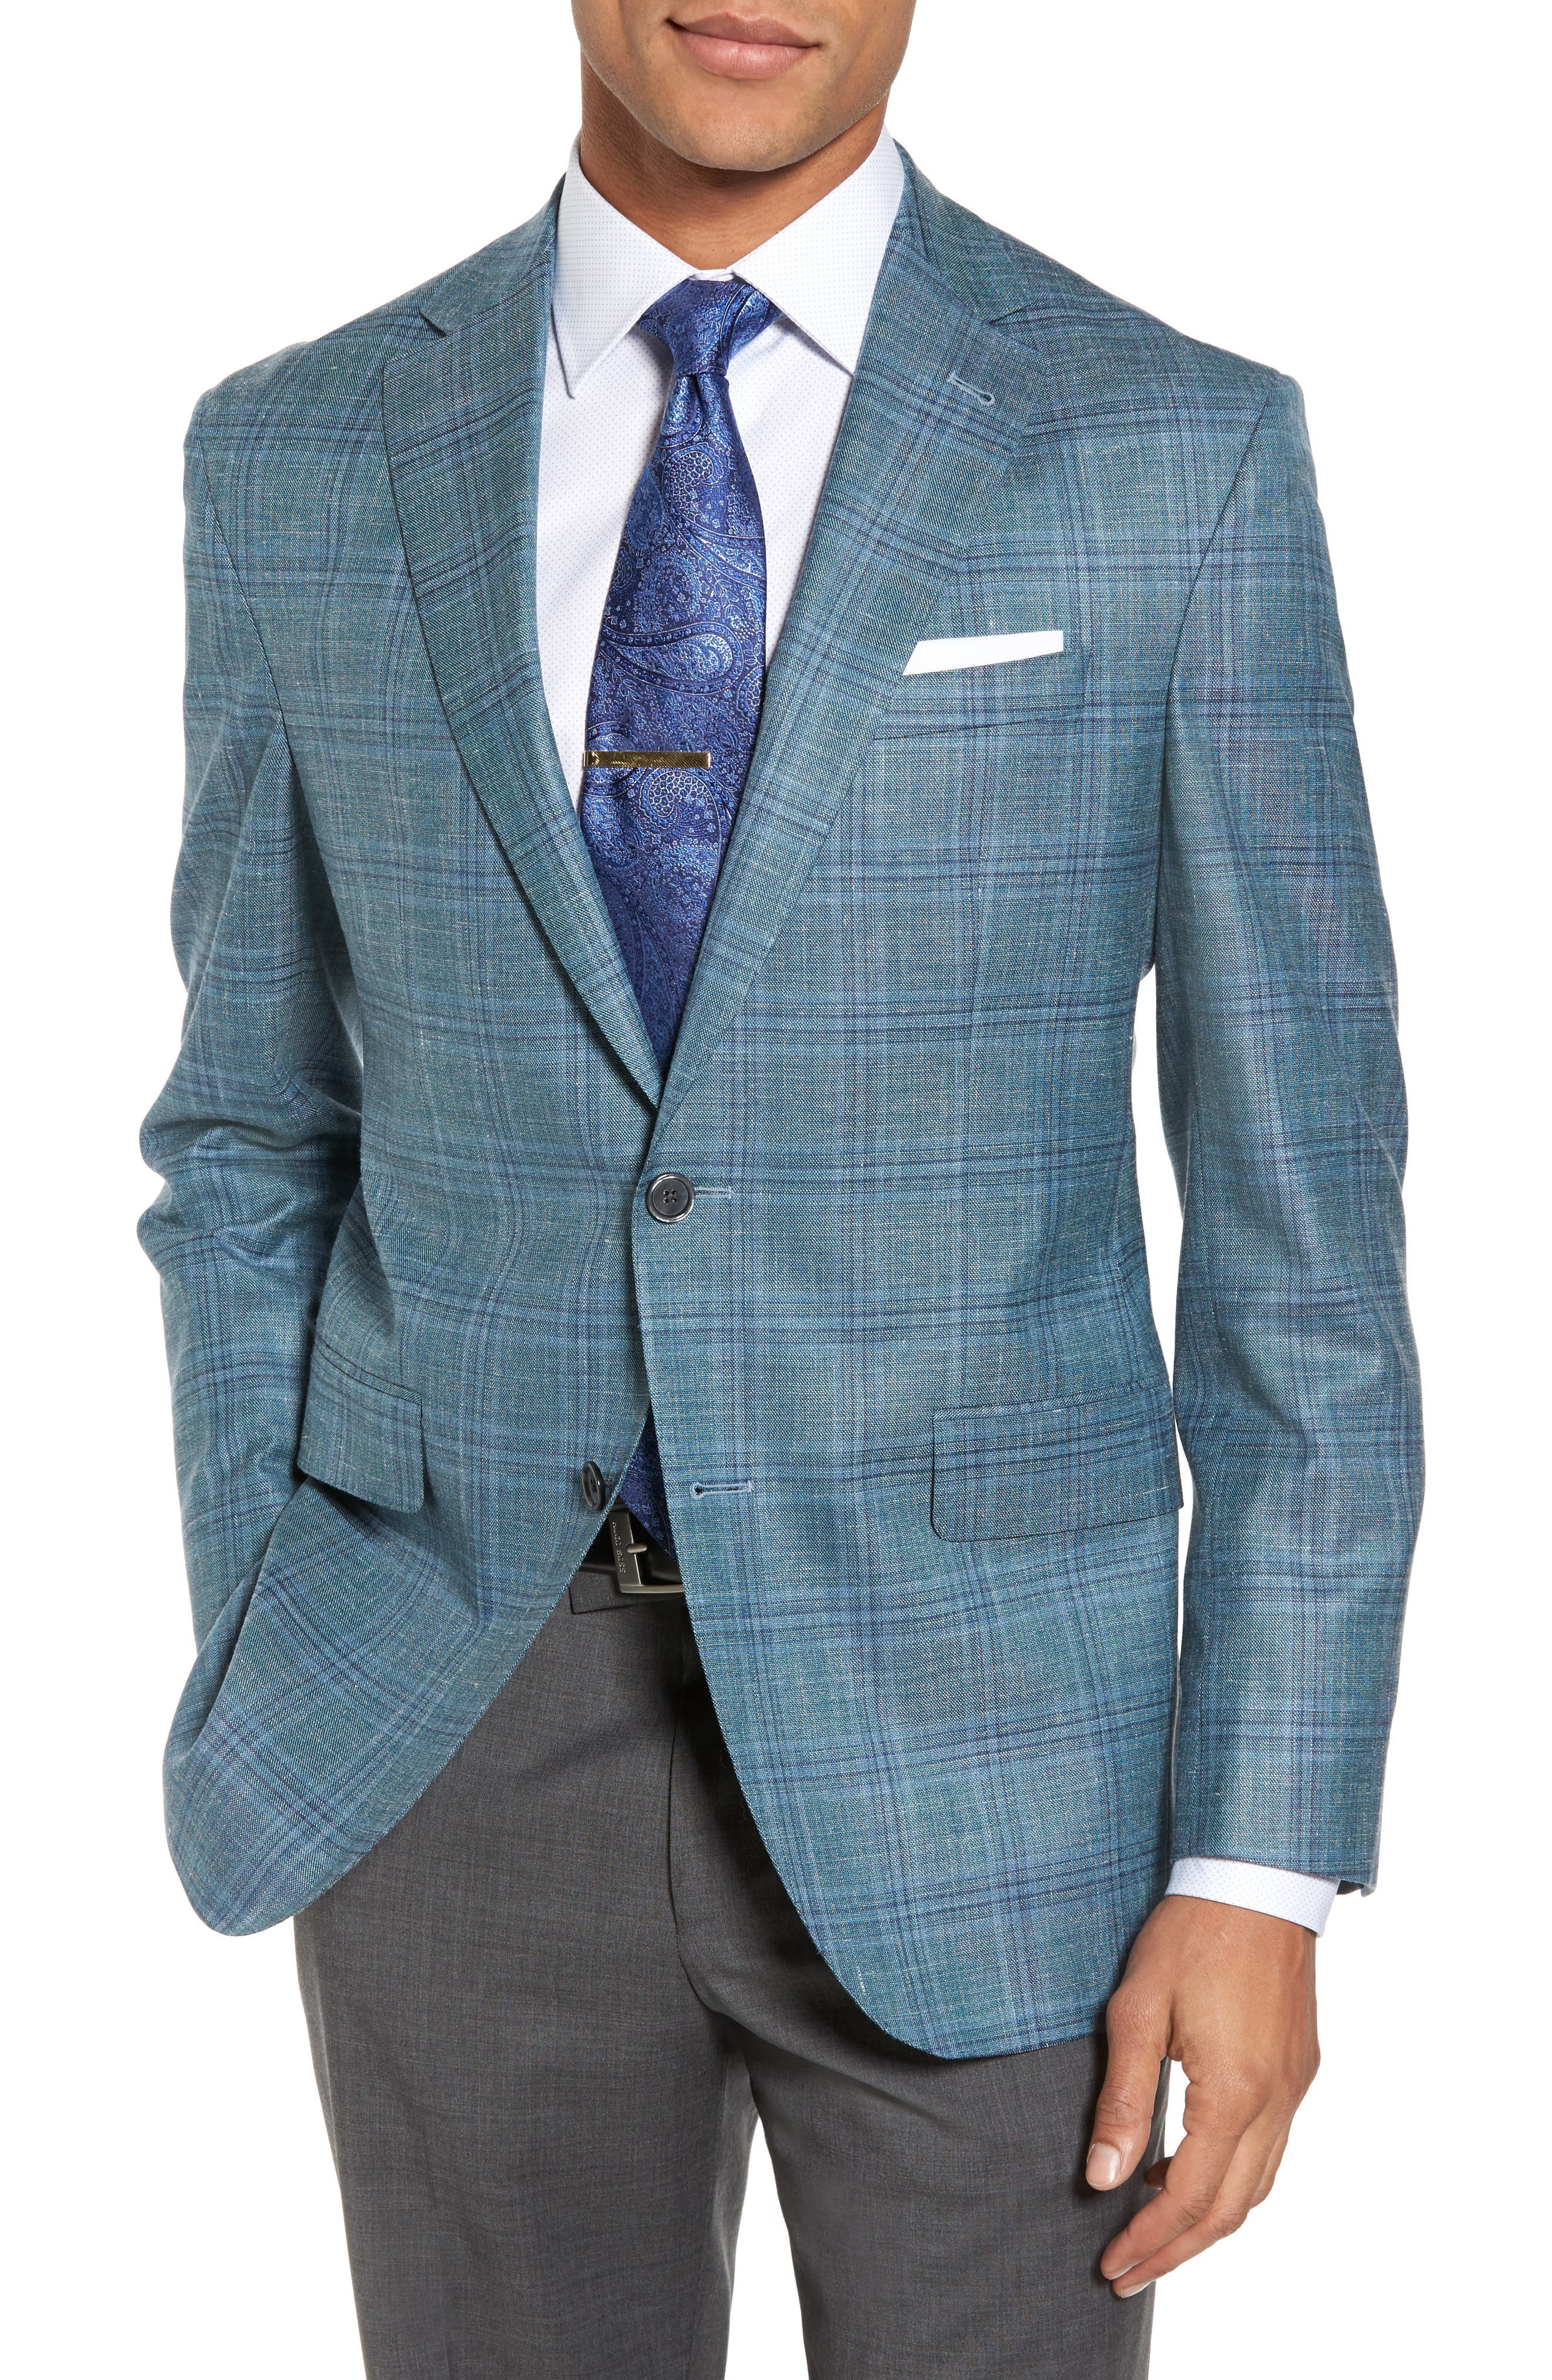 Alternate Image 1 Selected - David Donahue Ashton Classic Fit Stretch Plaid Wool Blend Sport Coat